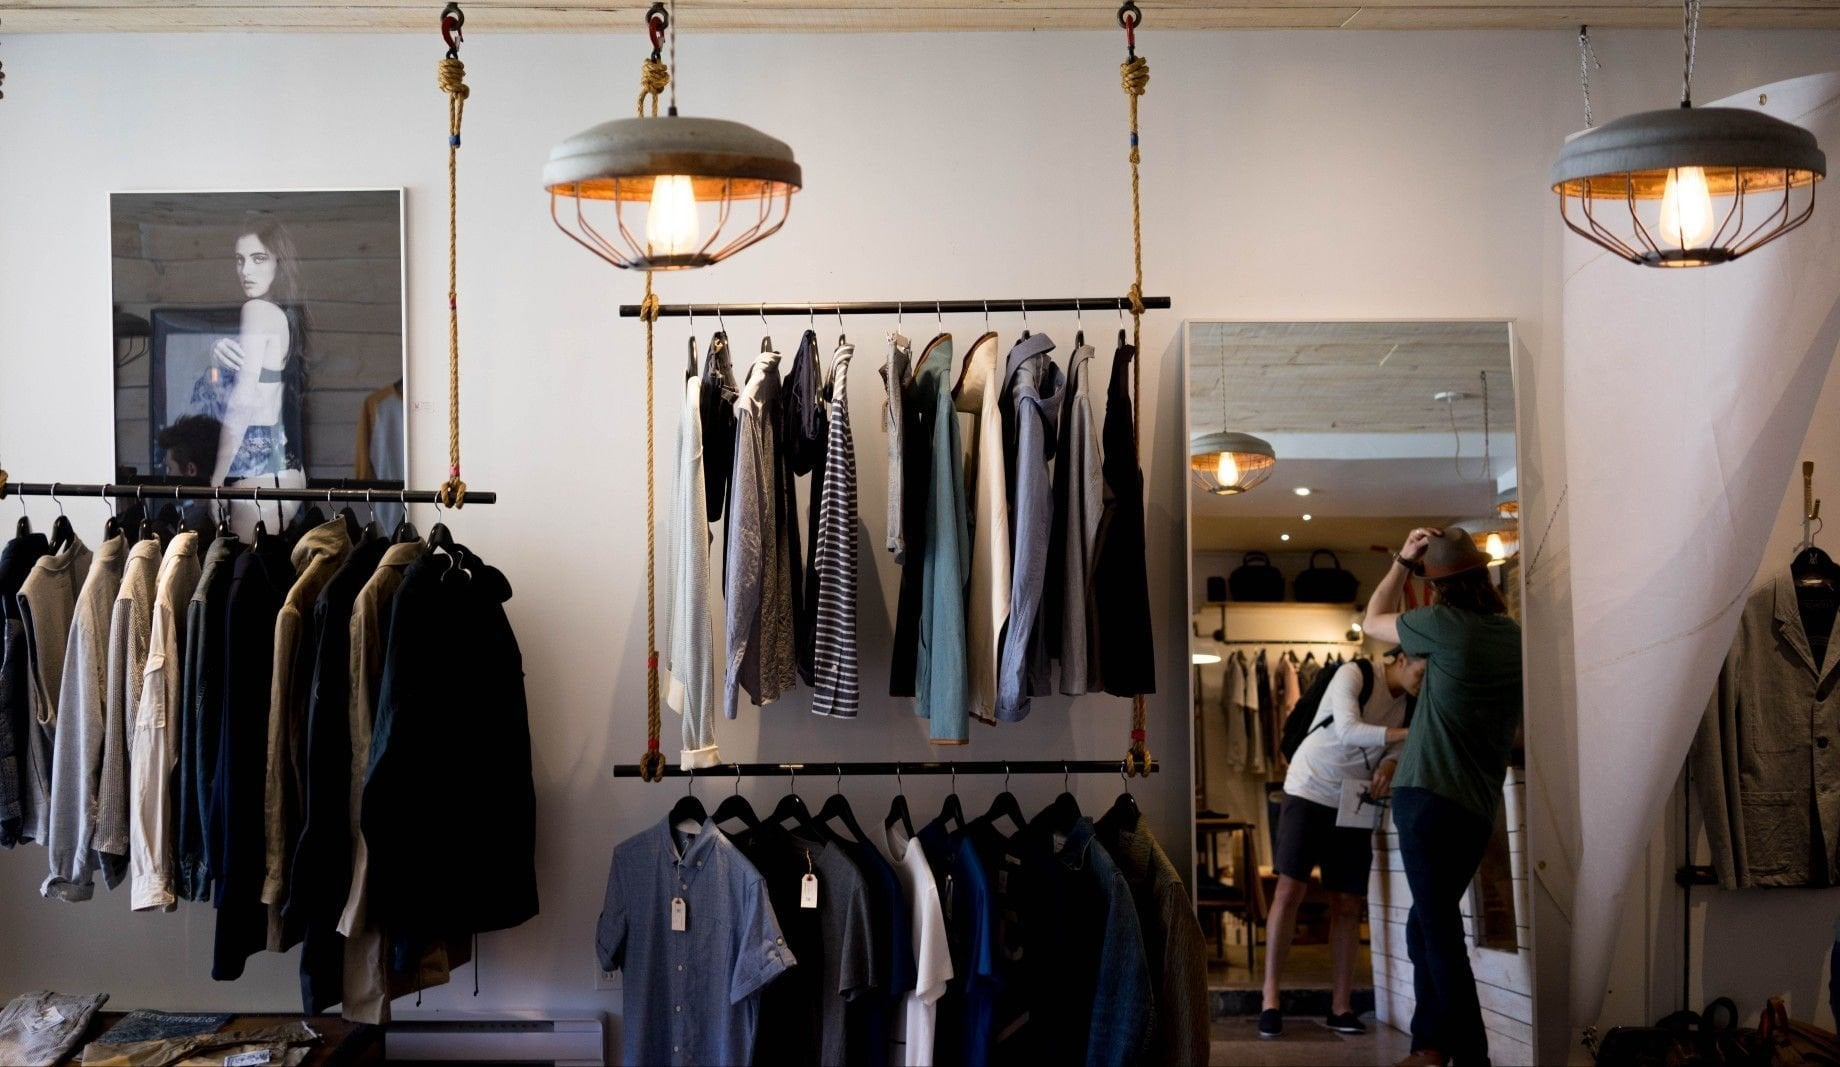 Clothes business